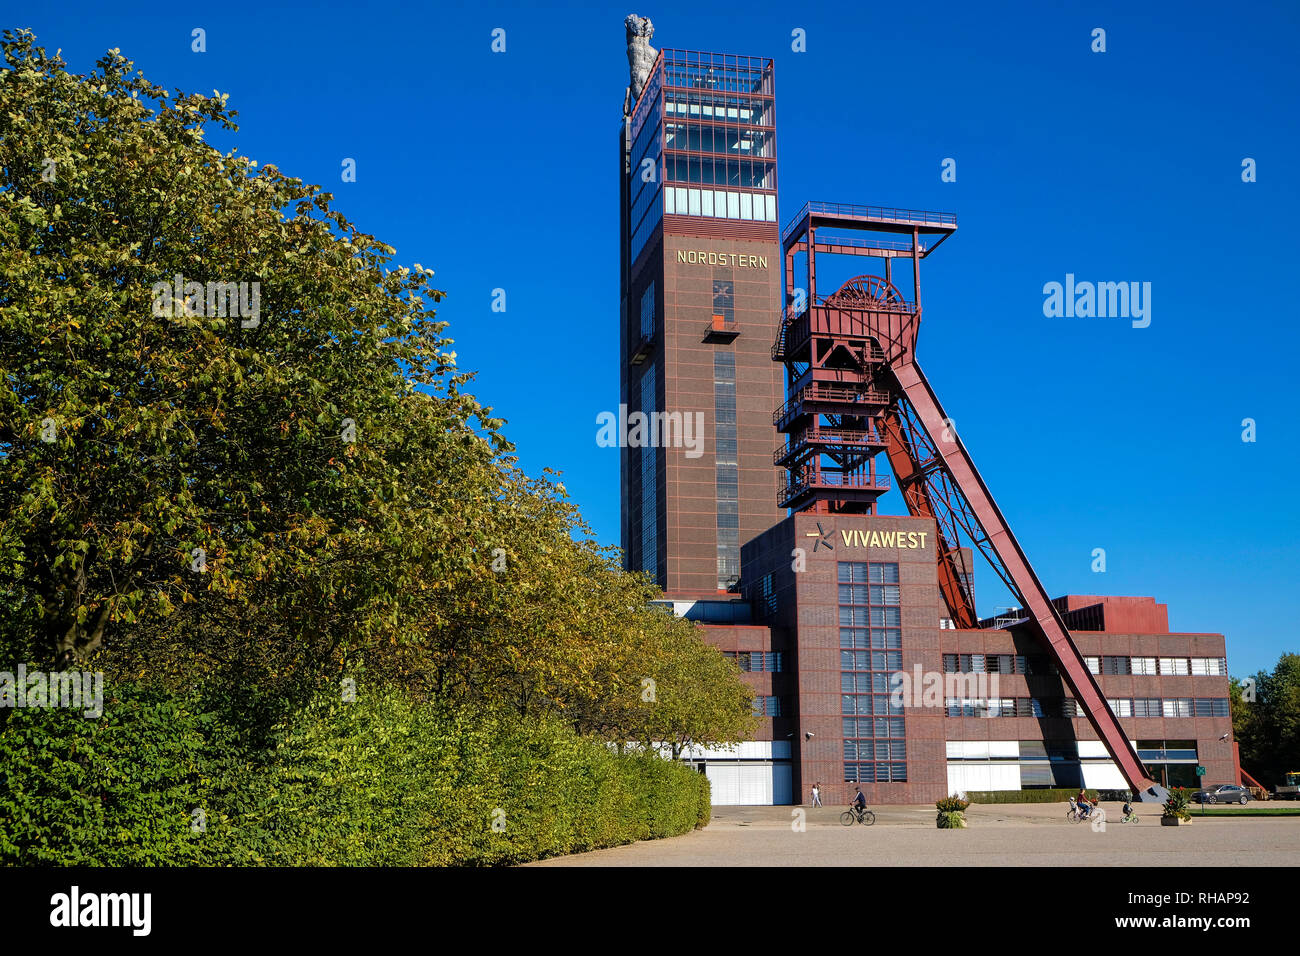 Germany, Gelsenkirchen, 27.09.2018, The former Nordstern mine in Gelsenkirchen with the headquarters of the real estate company Vivawest - Stock Image